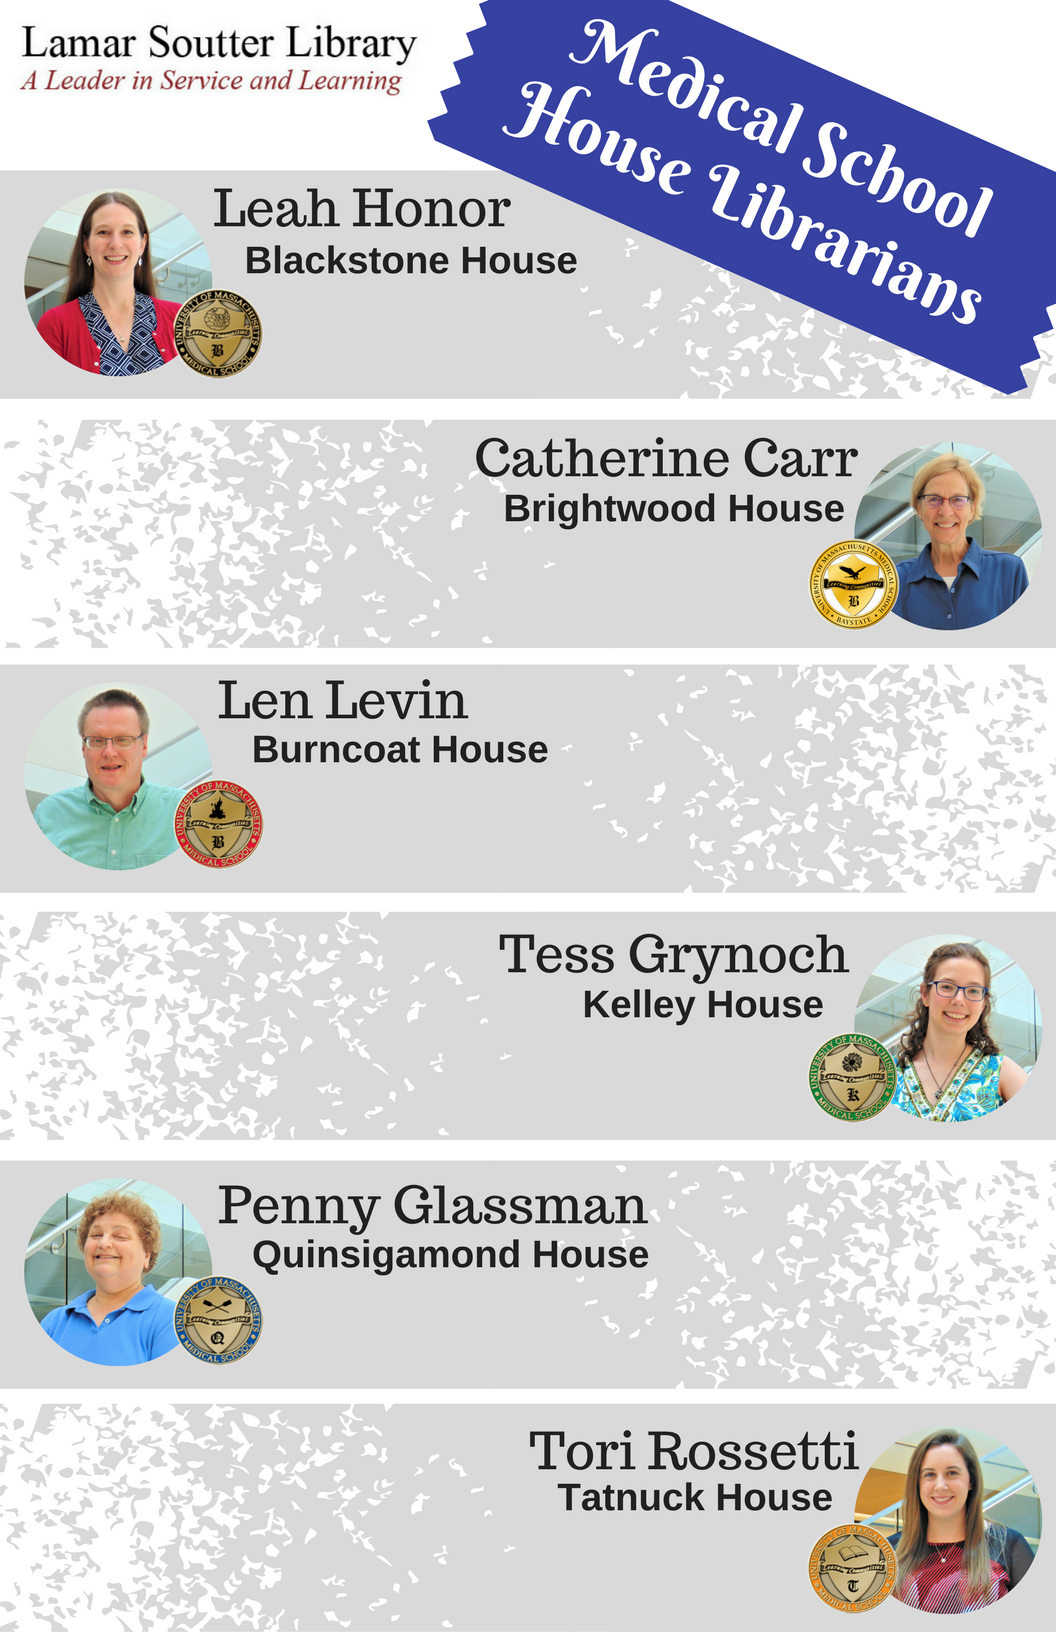 Medical School House Librarians: Leah Honor for Blackstone House, Catherine Carr for Brightwood House, Len Levin for Burncoat House, Tess Grynoch for Kelley House, Penny Glassman for Quinsigamond House, Tori Rossetti for Tatnuck House